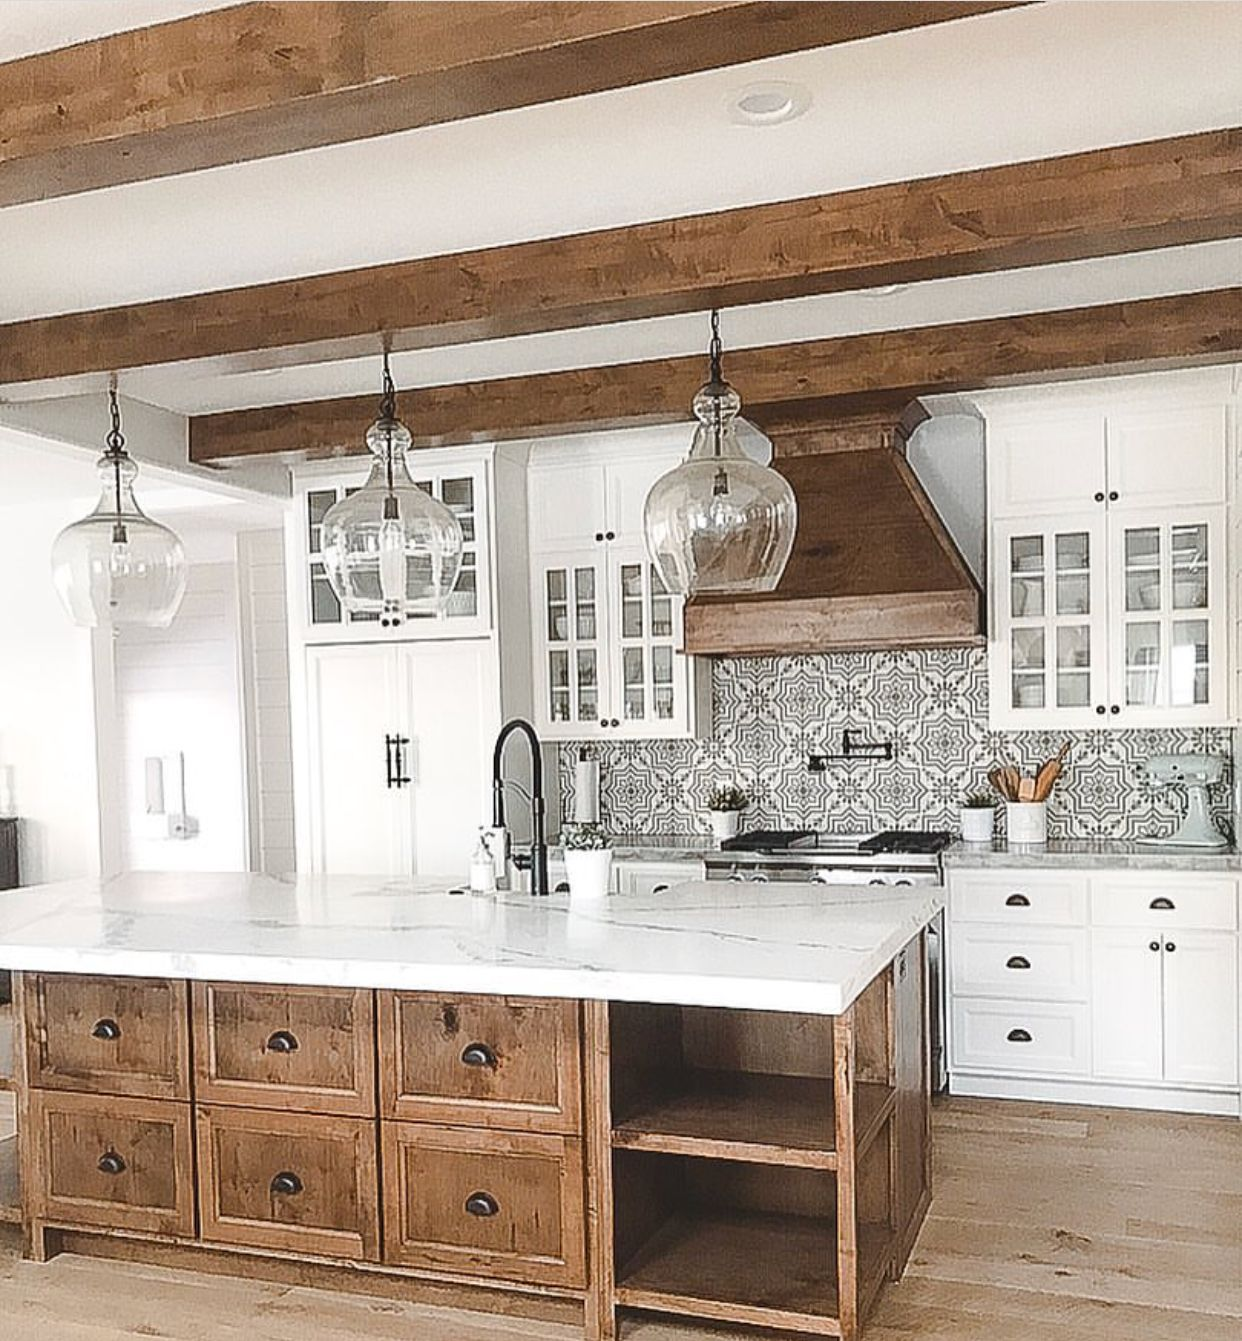 Wood Hood White Cabinetry And Quilt Inspired Backsplash Home Decor Kitchen Farmhouse Style Kitchen Rustic Kitchen